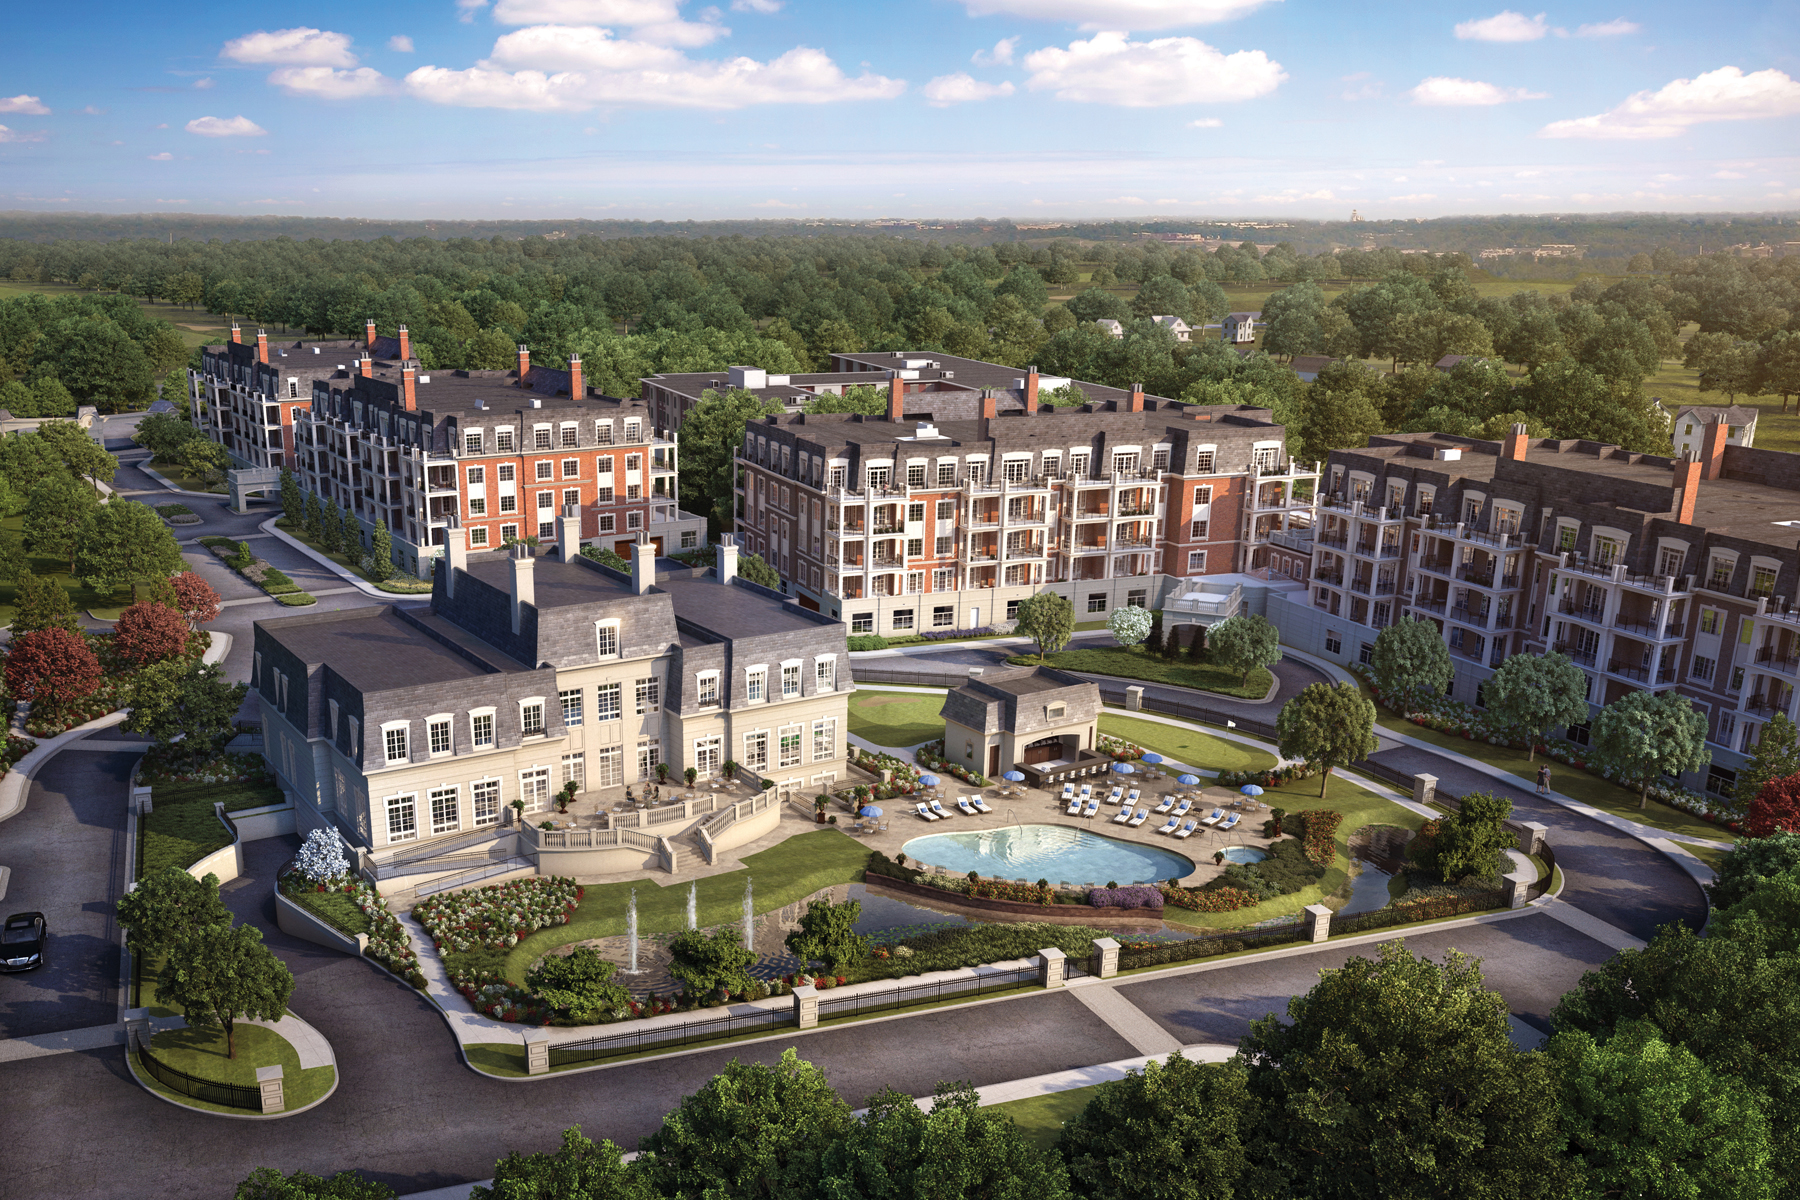 Townhouse for Sale at The Ritz-Carlton Residences, Long Island, North Hills 1000 Royal Ct 1307 North Hills, New York, 11040 United States